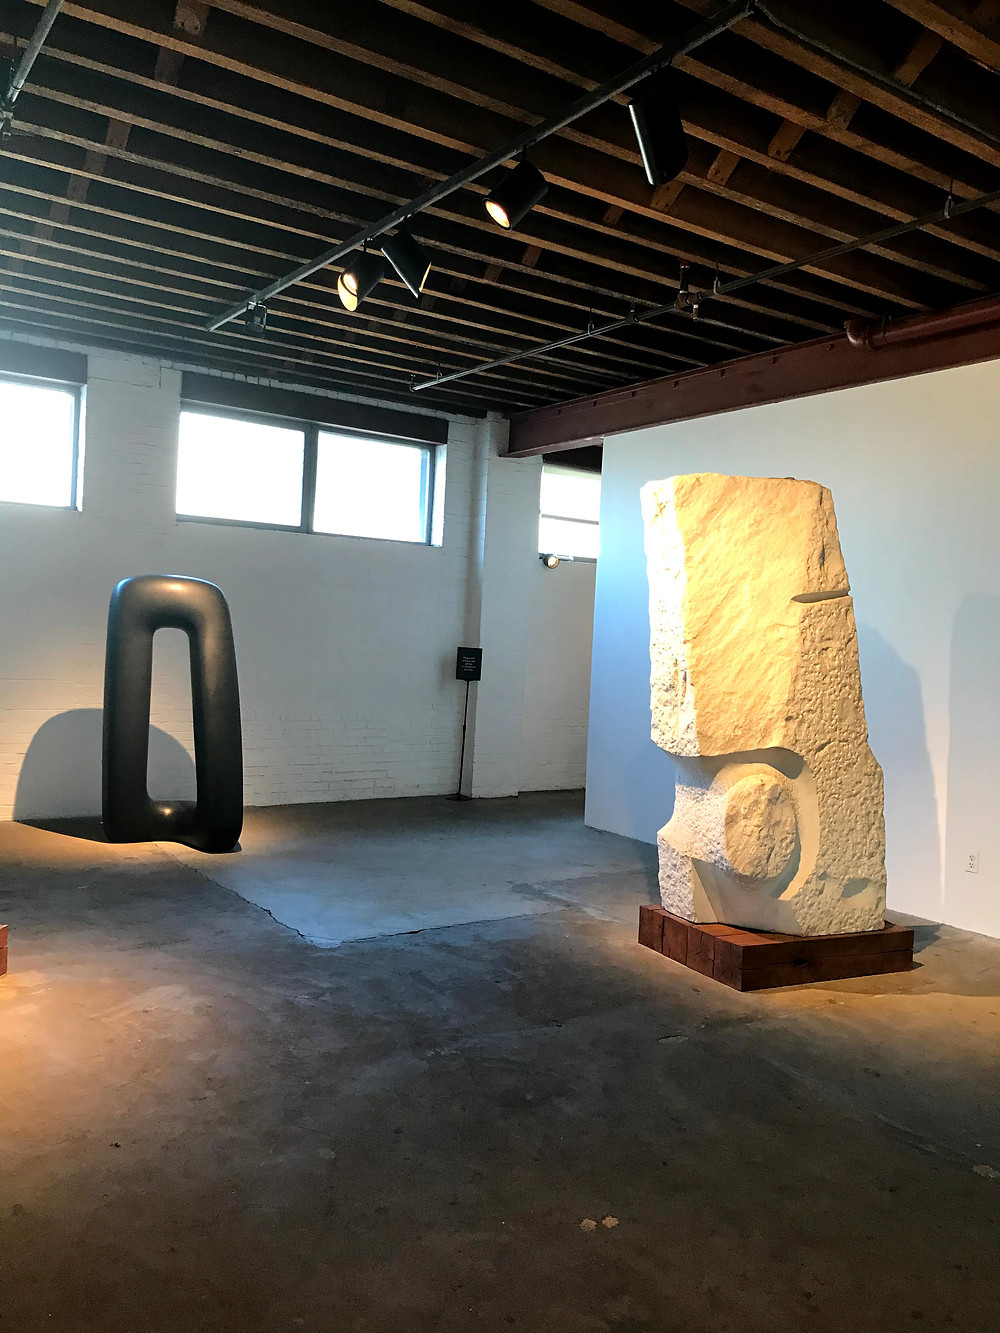 Noguchi sculpture museum in New York City, stone and wood sculptures